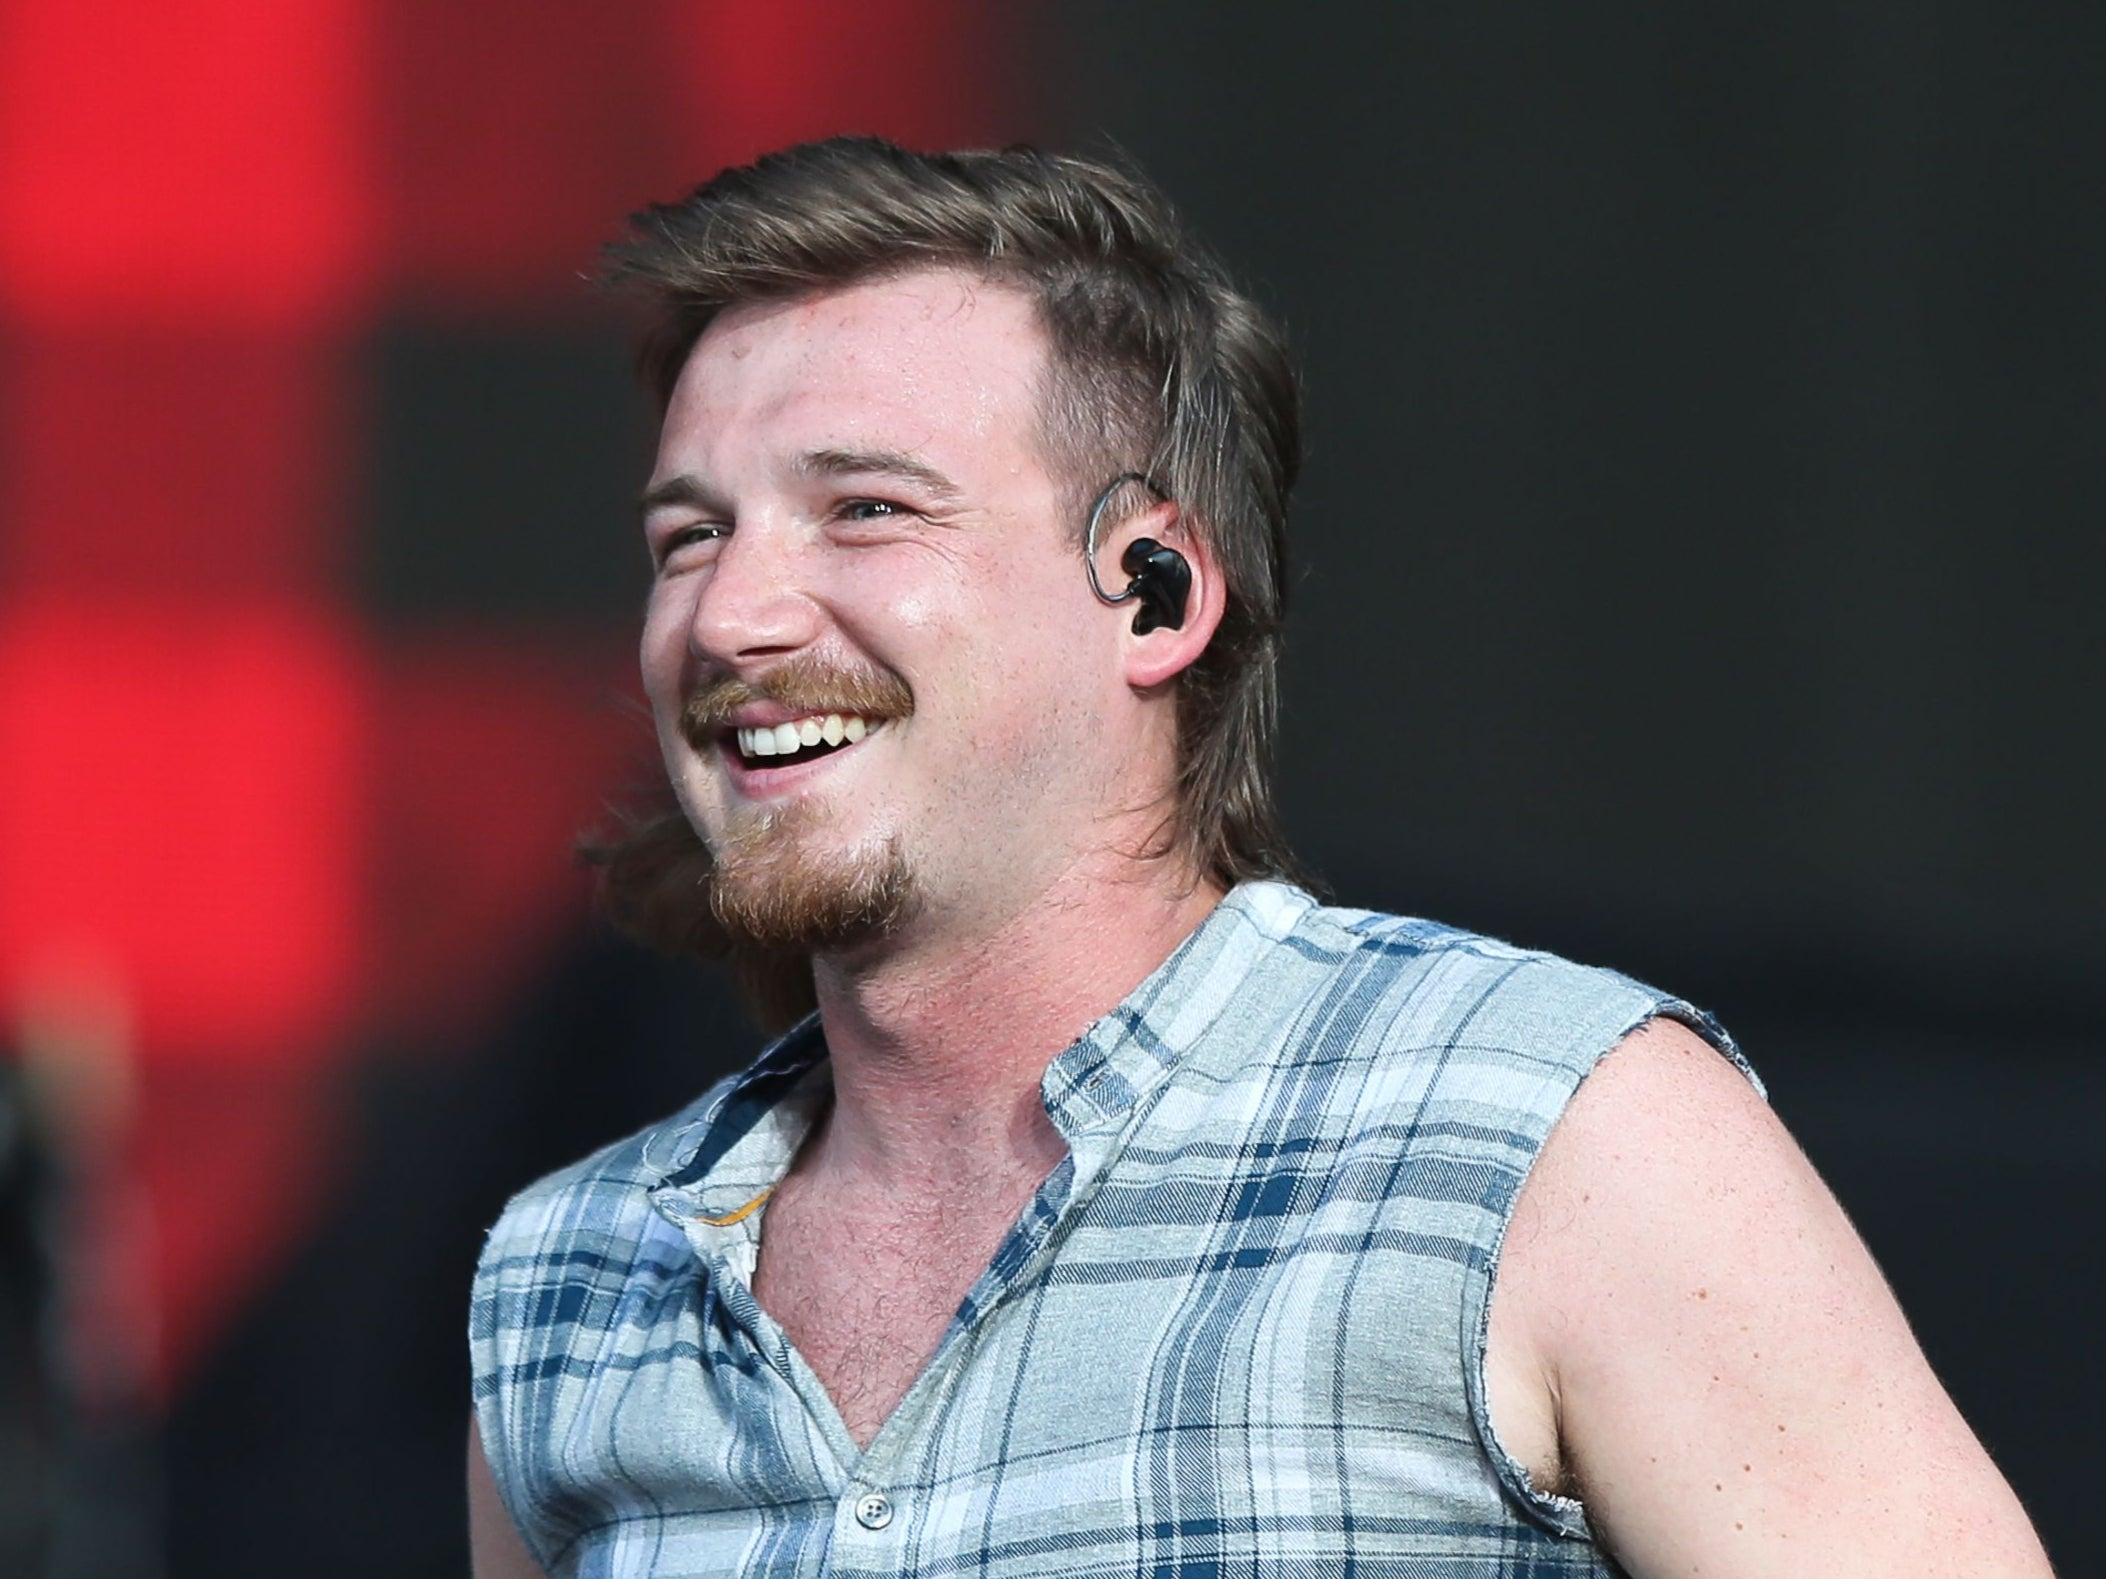 Morgan Wallen removed from US radio playlists after using n-word in leaked video